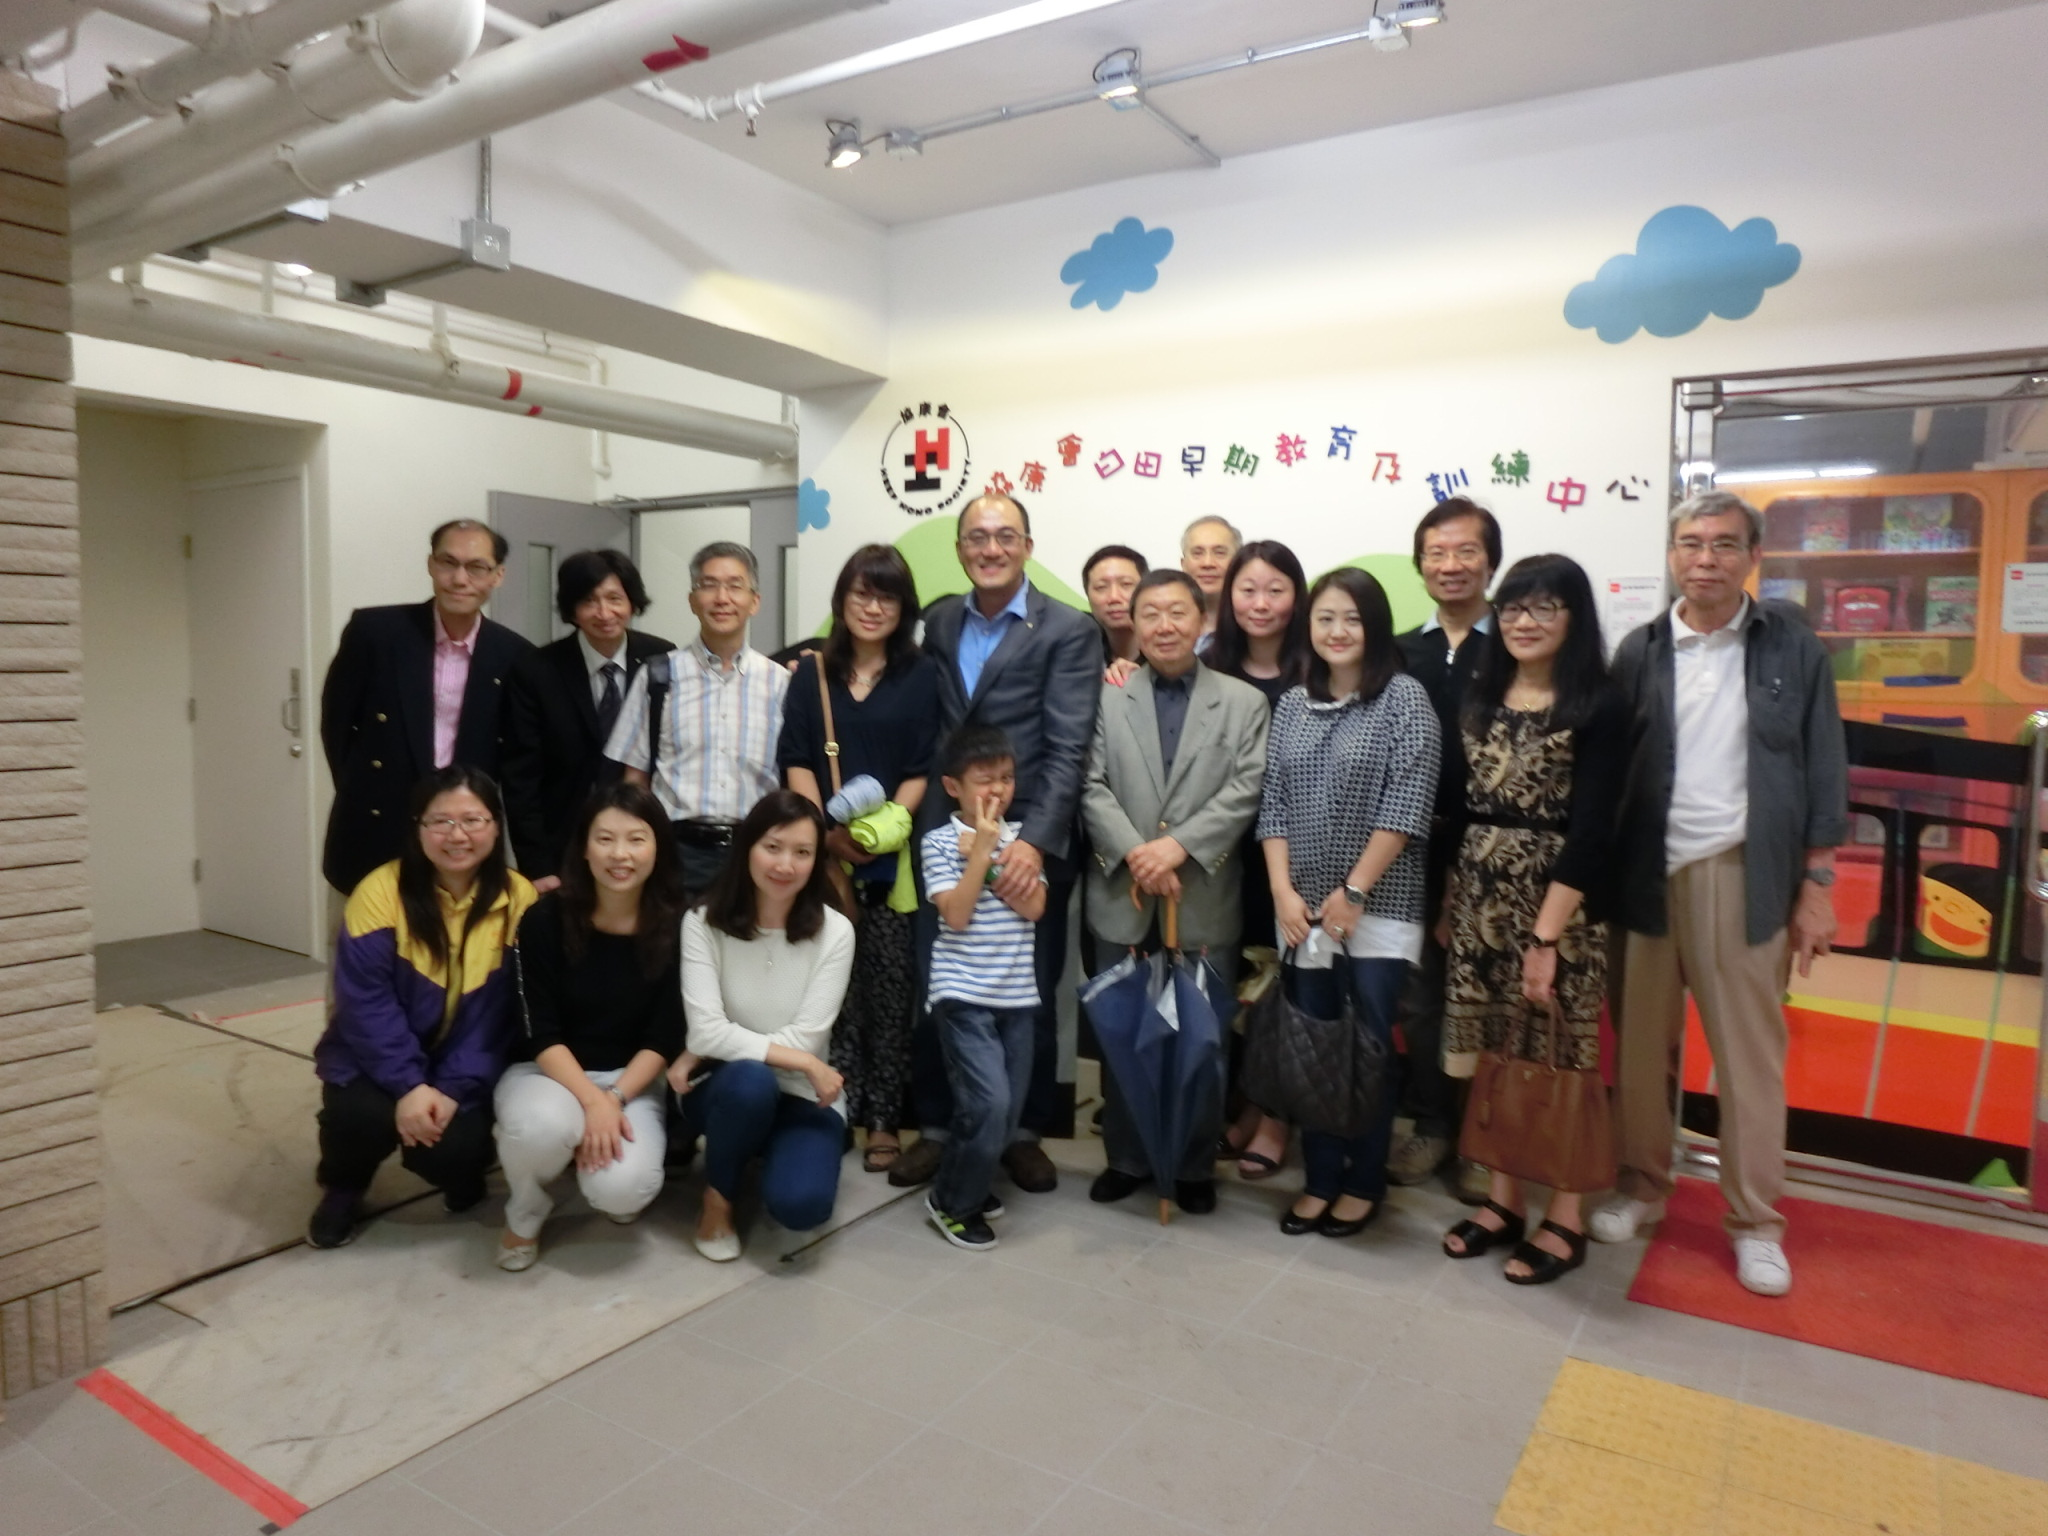 Rotary Club of Kingspark Hong Kong volunteers interacted with Heep Hong children at Pak Tin Centre